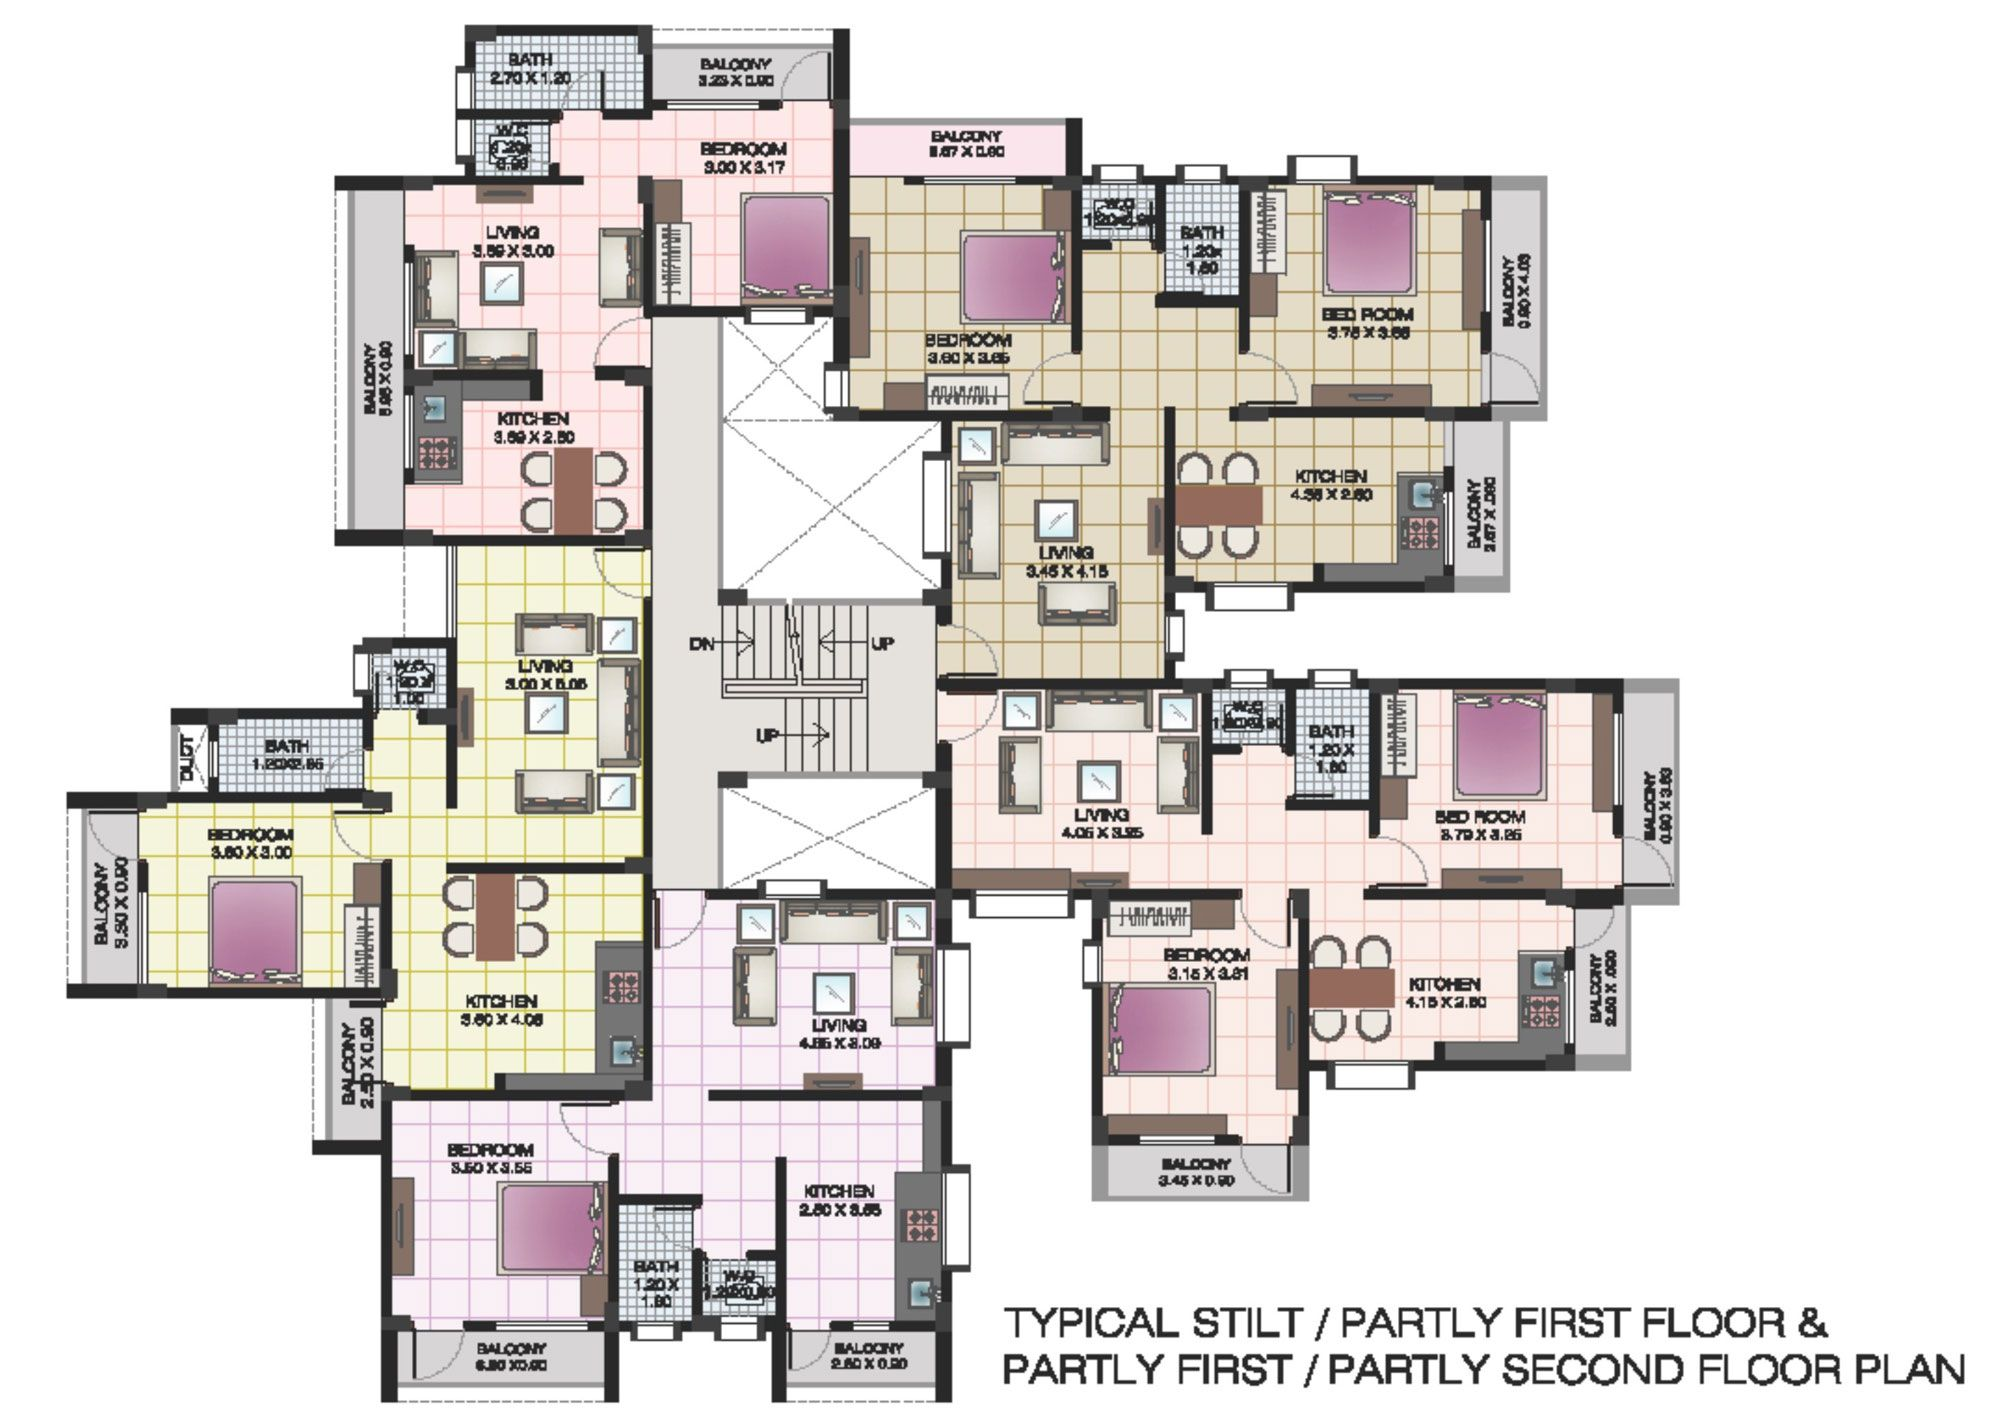 Apartment structures apartment floor plans of shri 4 floor apartment plan